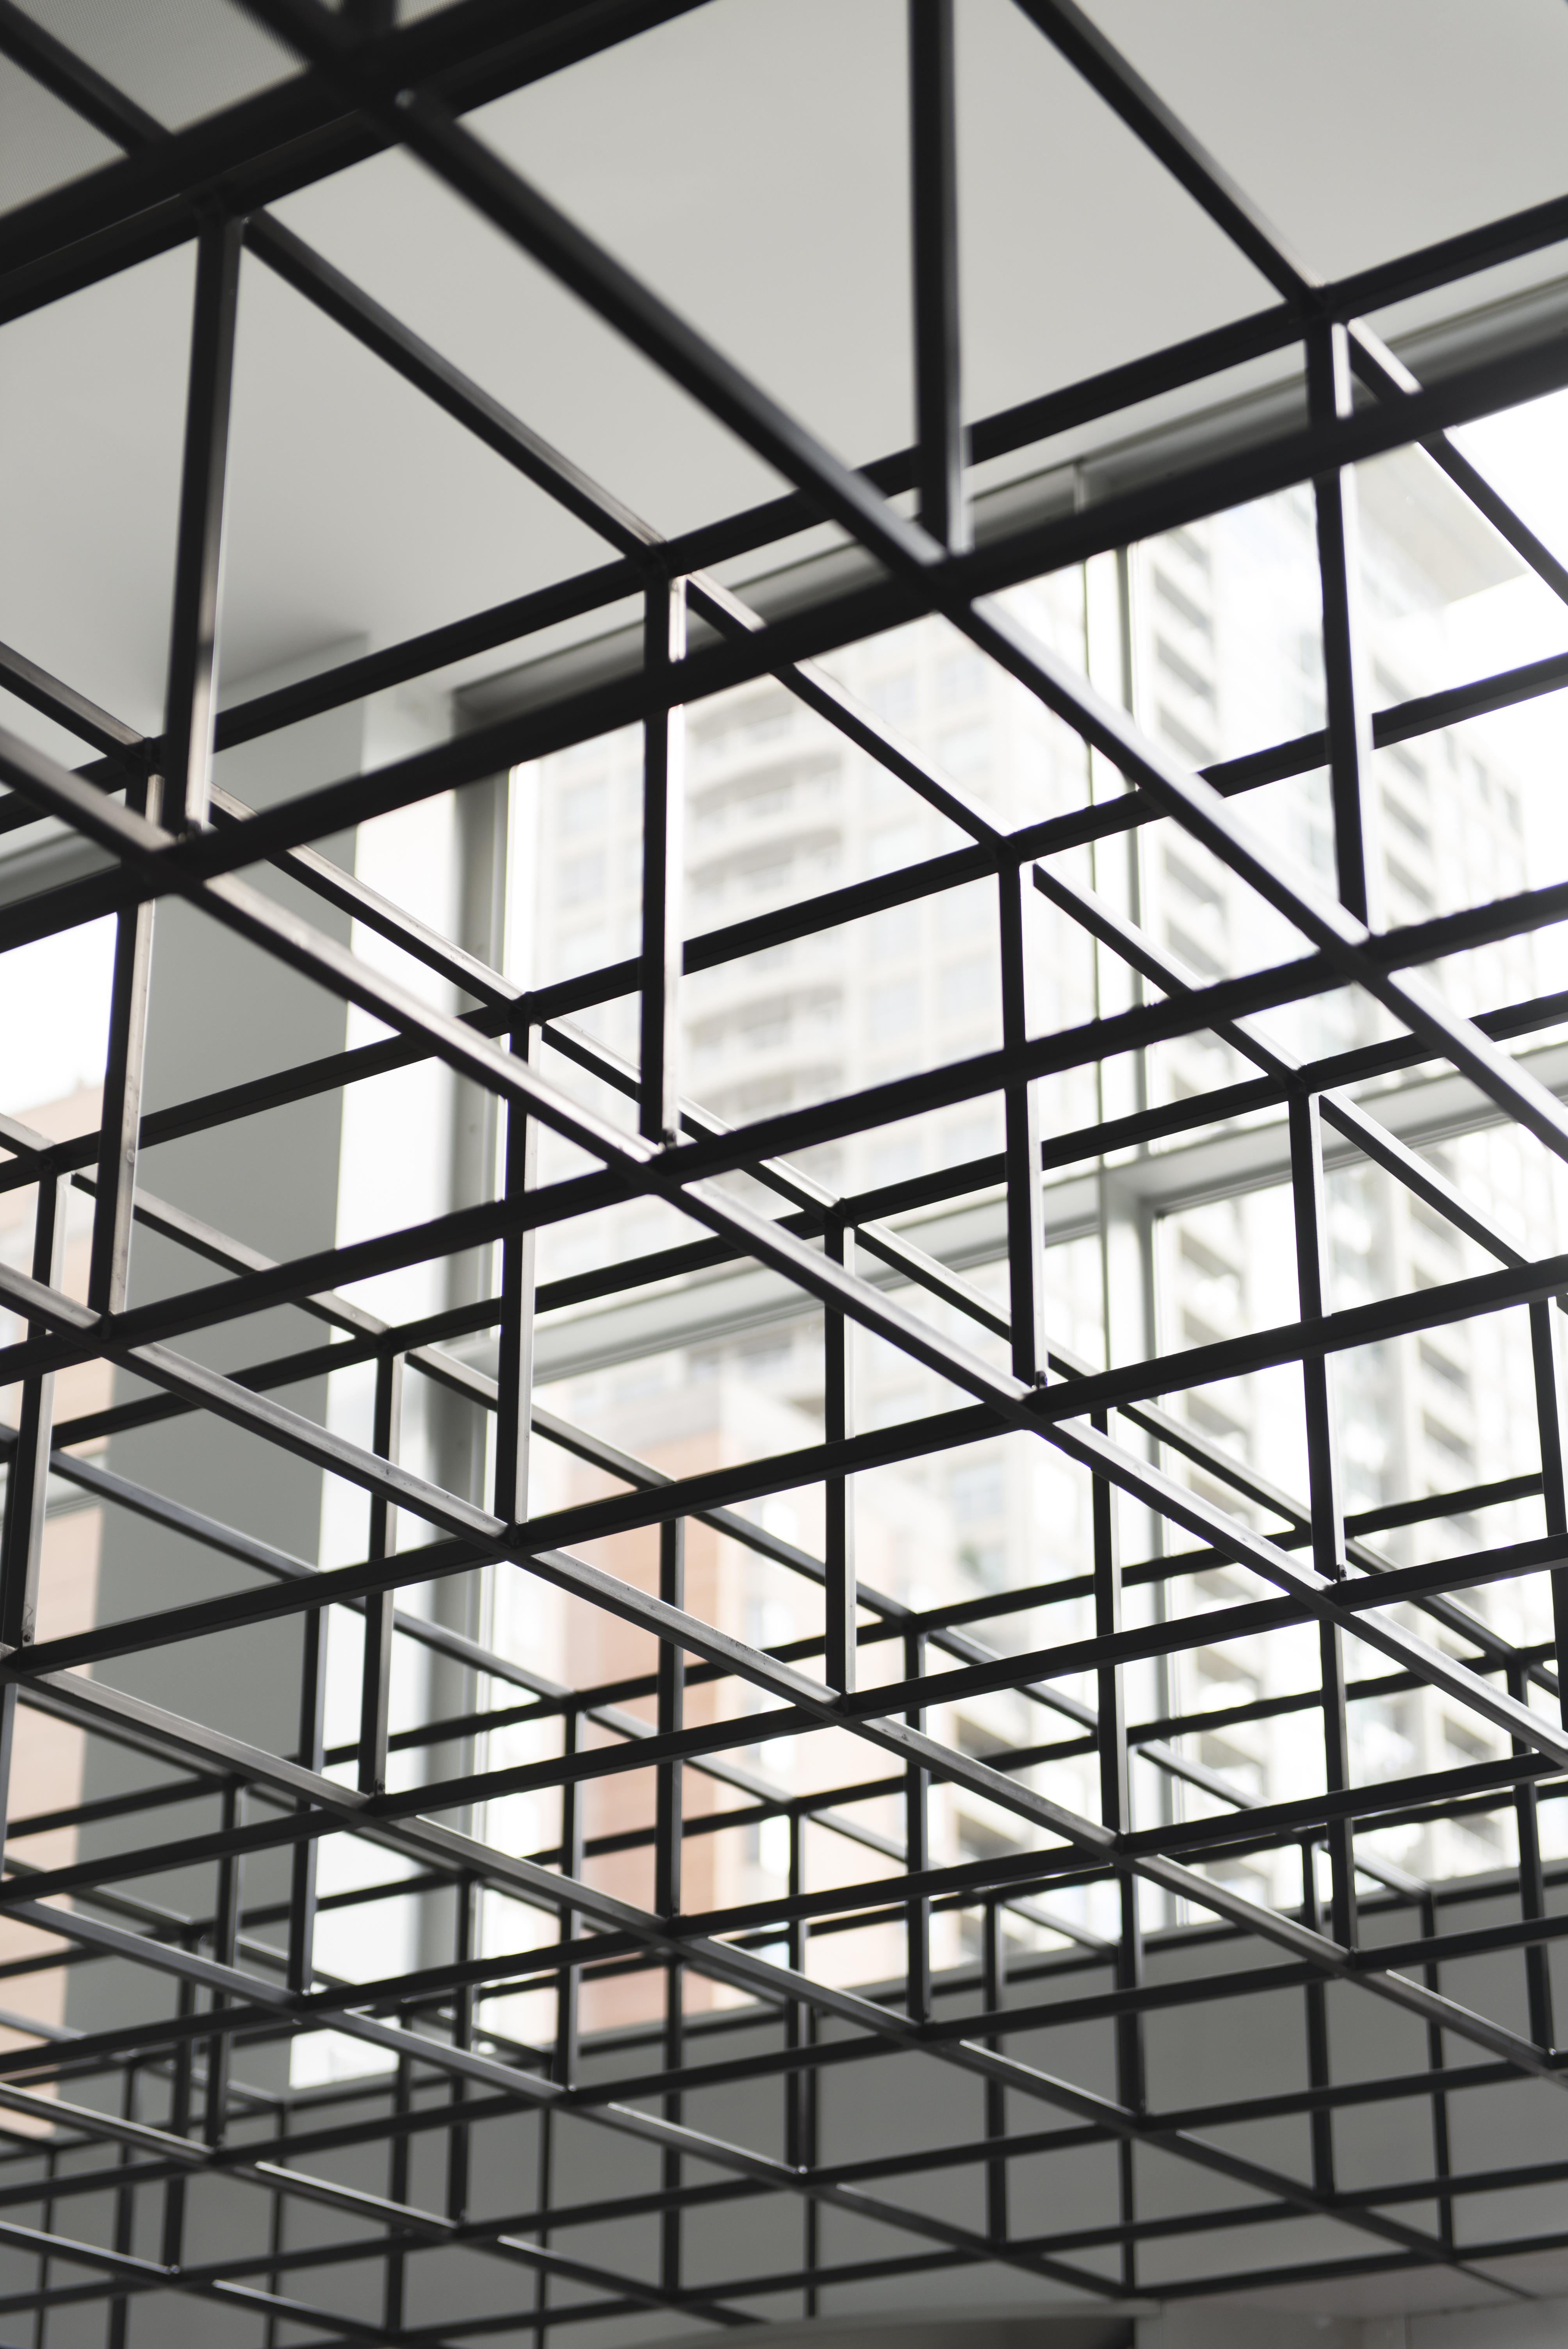 A grid of black, open-sided cubes photographed from below with a large window in the background